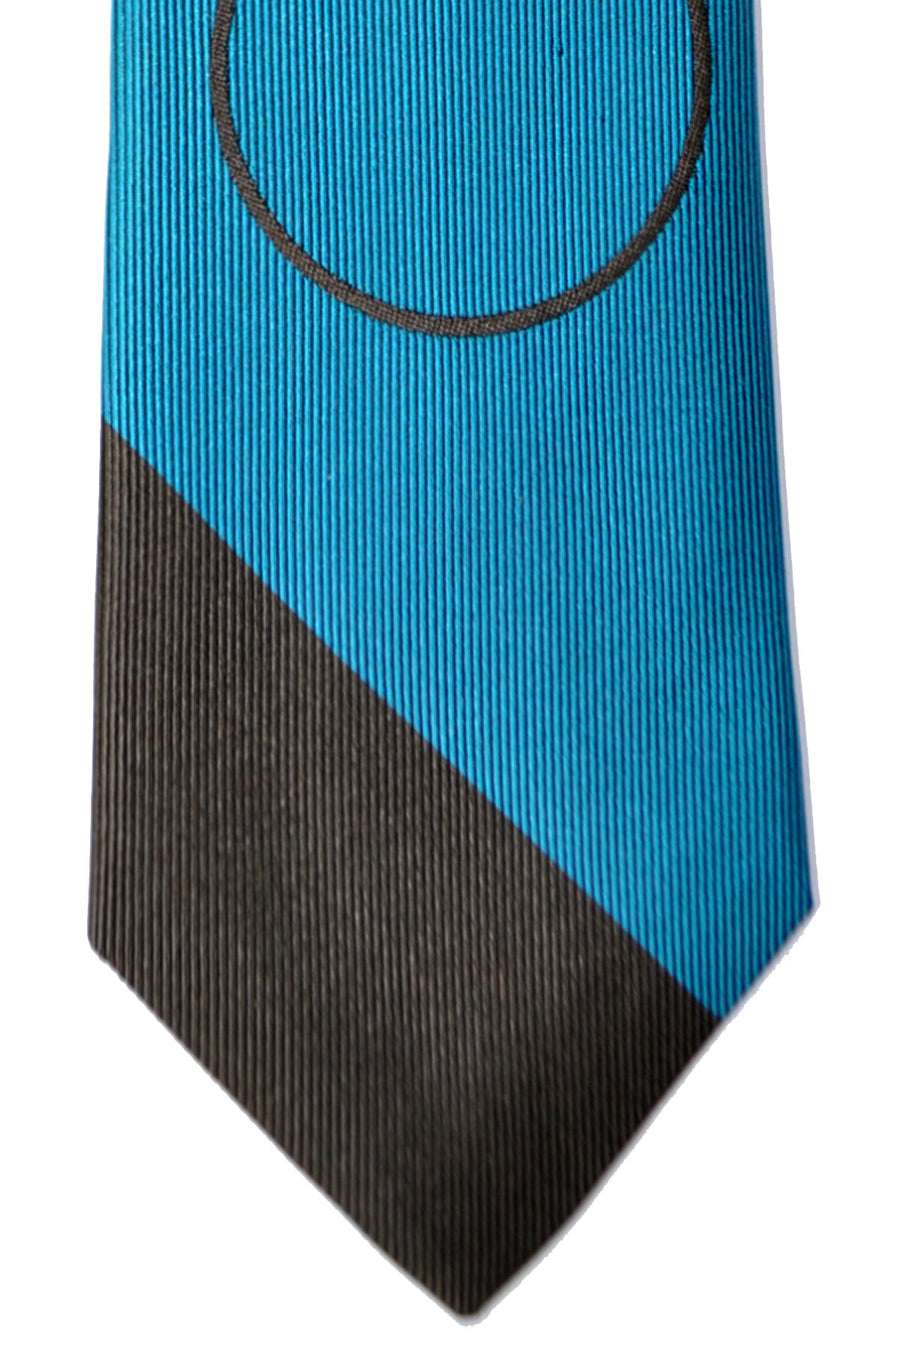 Gene Meyer Tie Brown Gray Aqua Circle Design